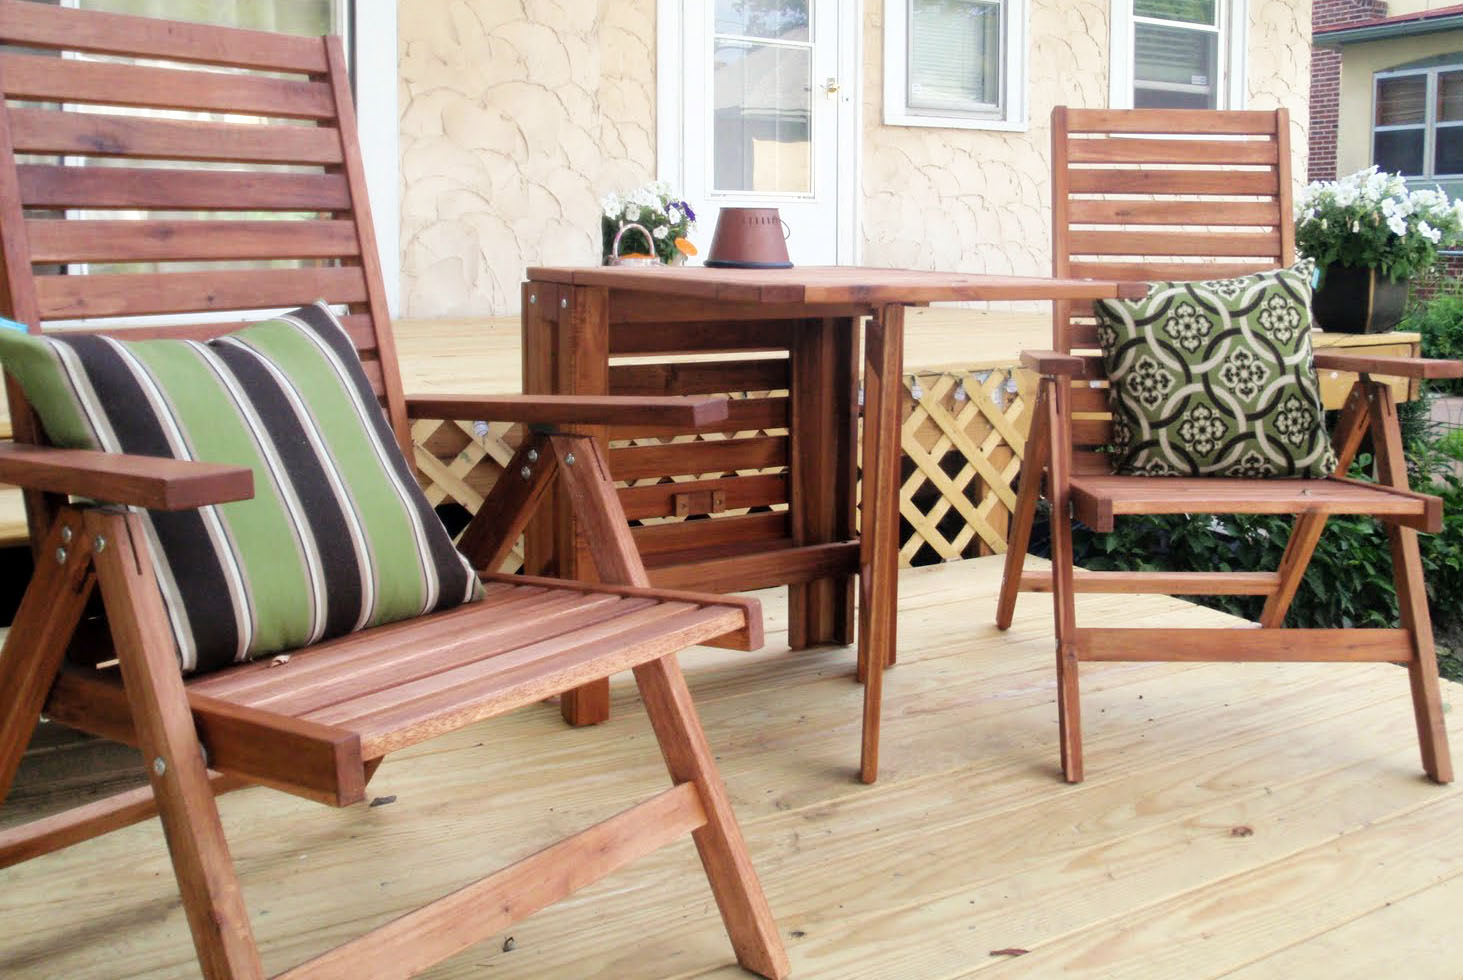 Balcony furniture small - Wooden Small Balcony Furniture With Pillows